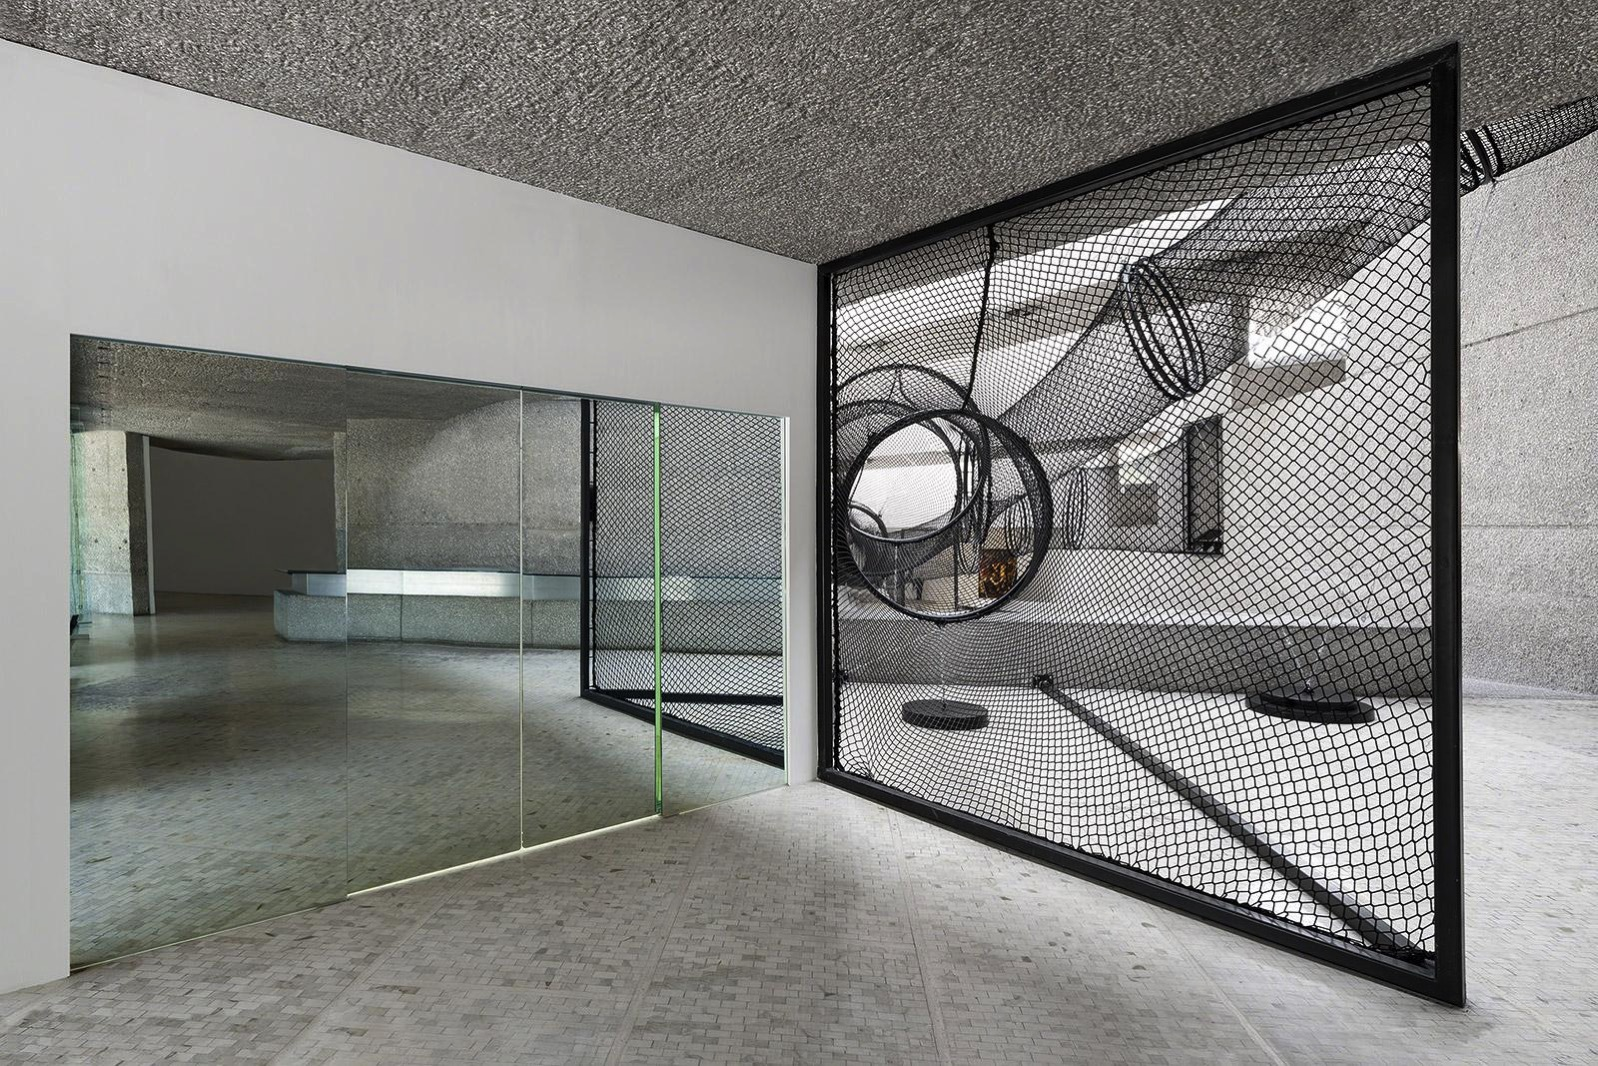 Carsten holler museo tamayo 07a